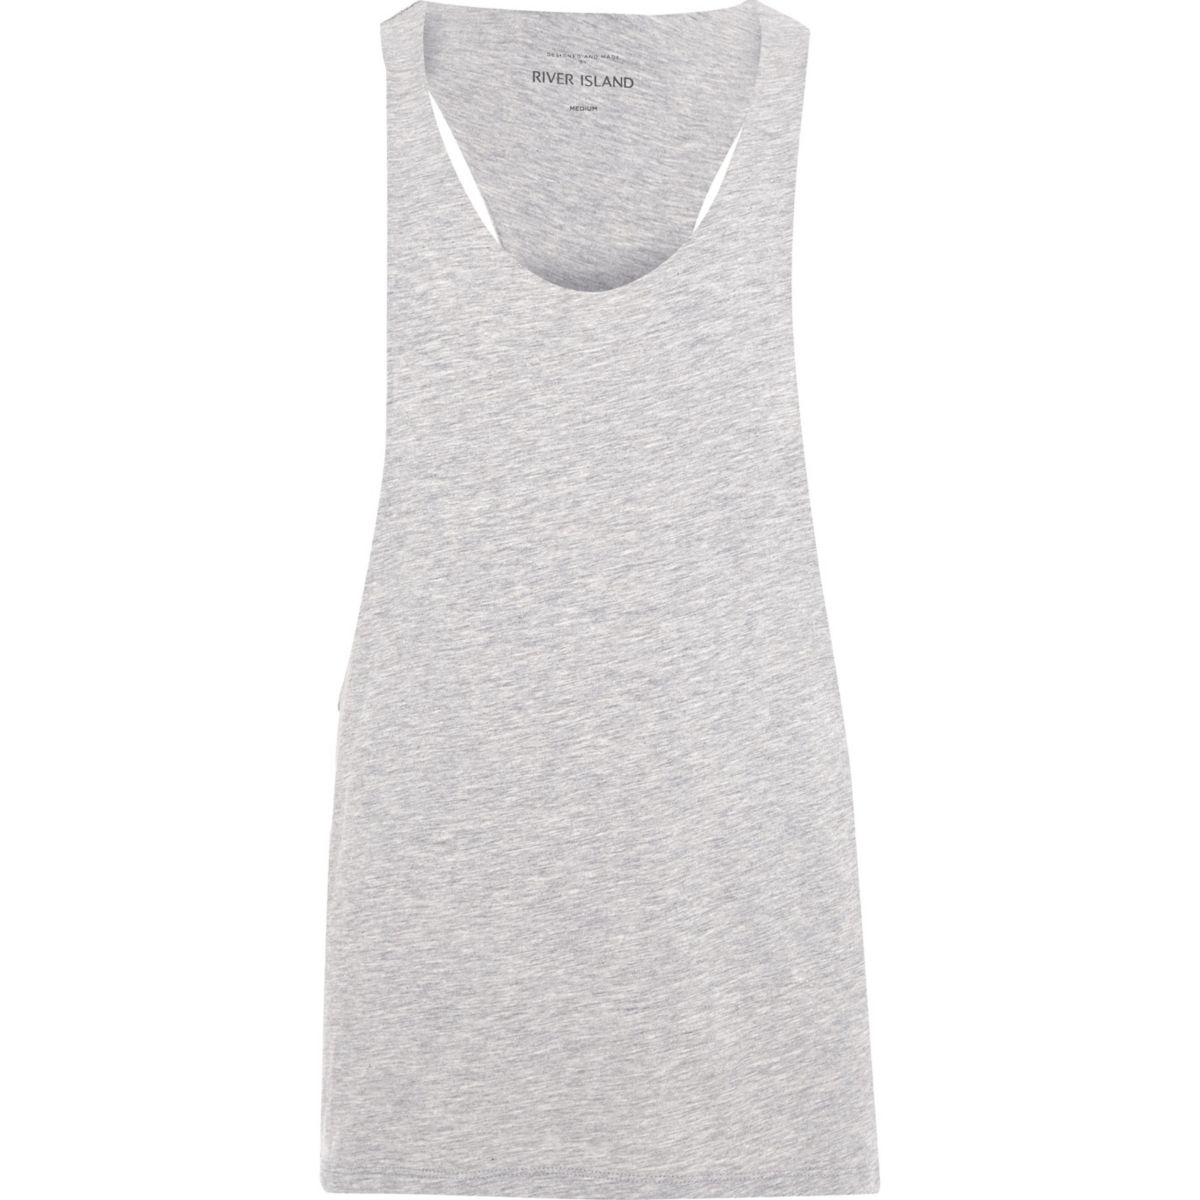 Grey marl racer back muscle fit tank